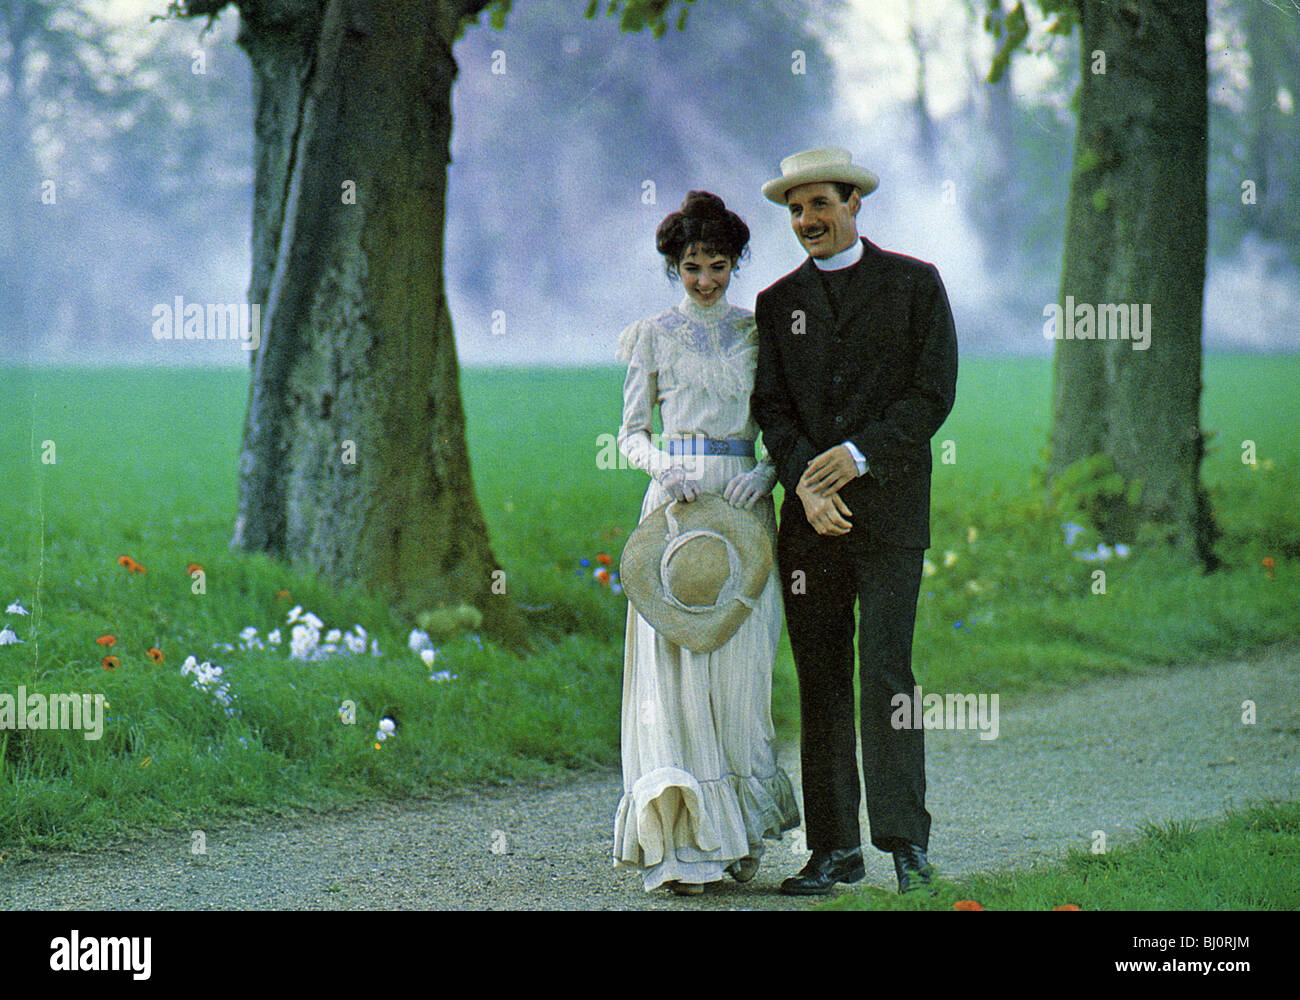 THE MISSIONARY - 1983 HandMade film with Michael Palin and Phoebe Nicholls - Stock Image